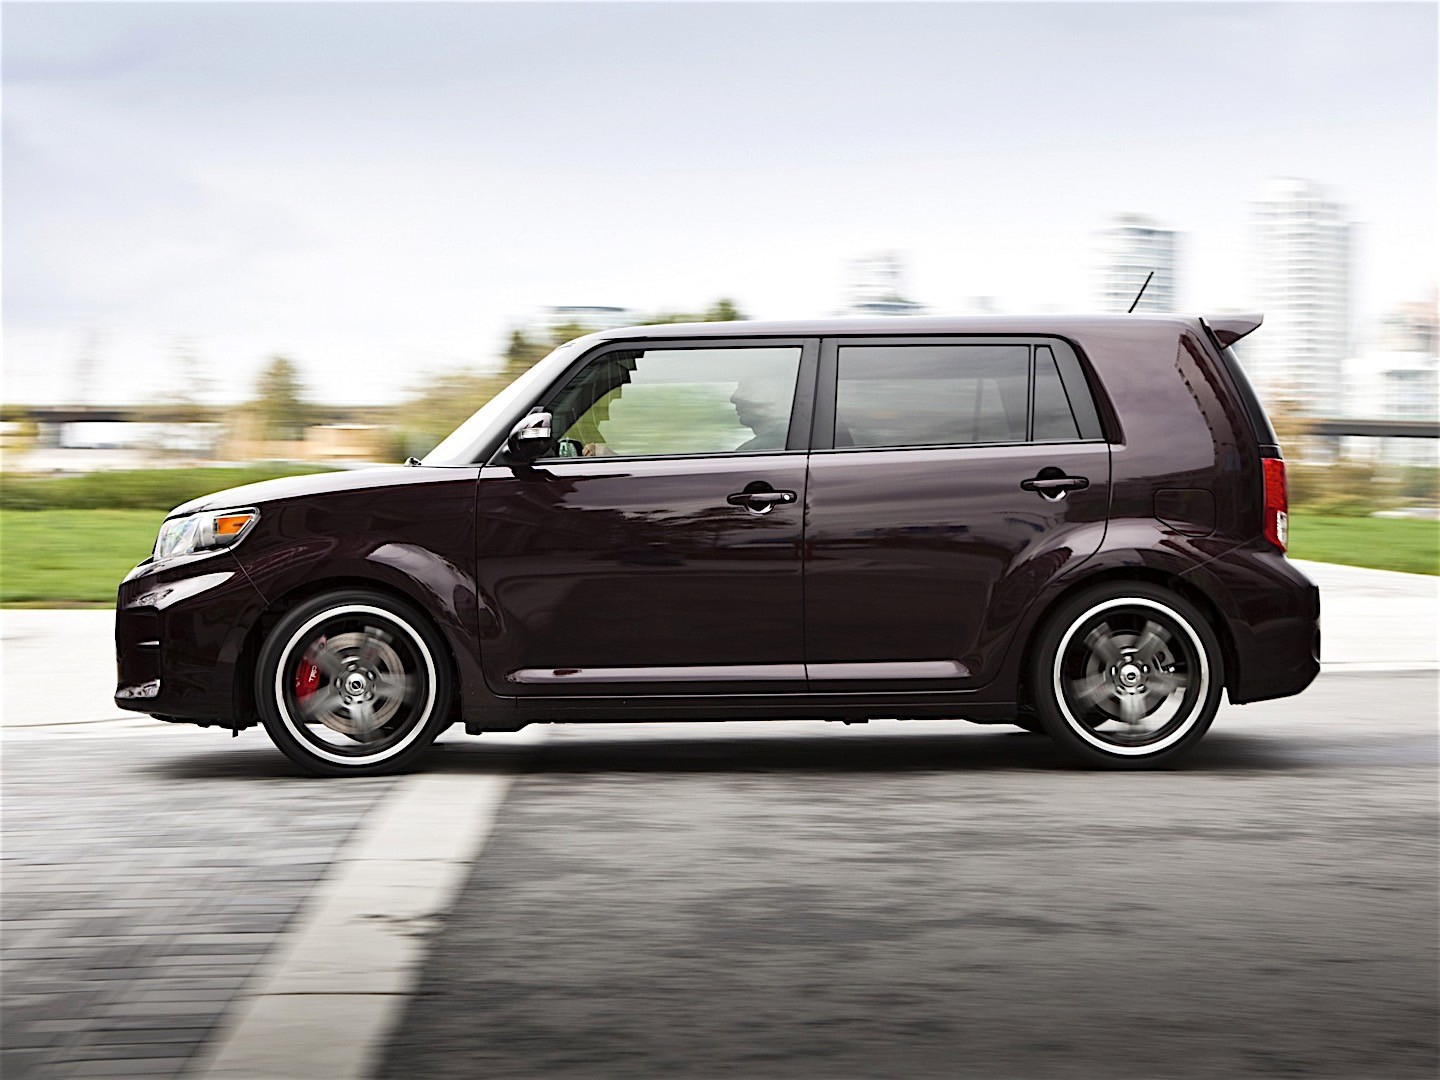 SCION xB - 2007, 2008, 2009, 2010, 2011, 2012, 2013, 2014, 2015 ...